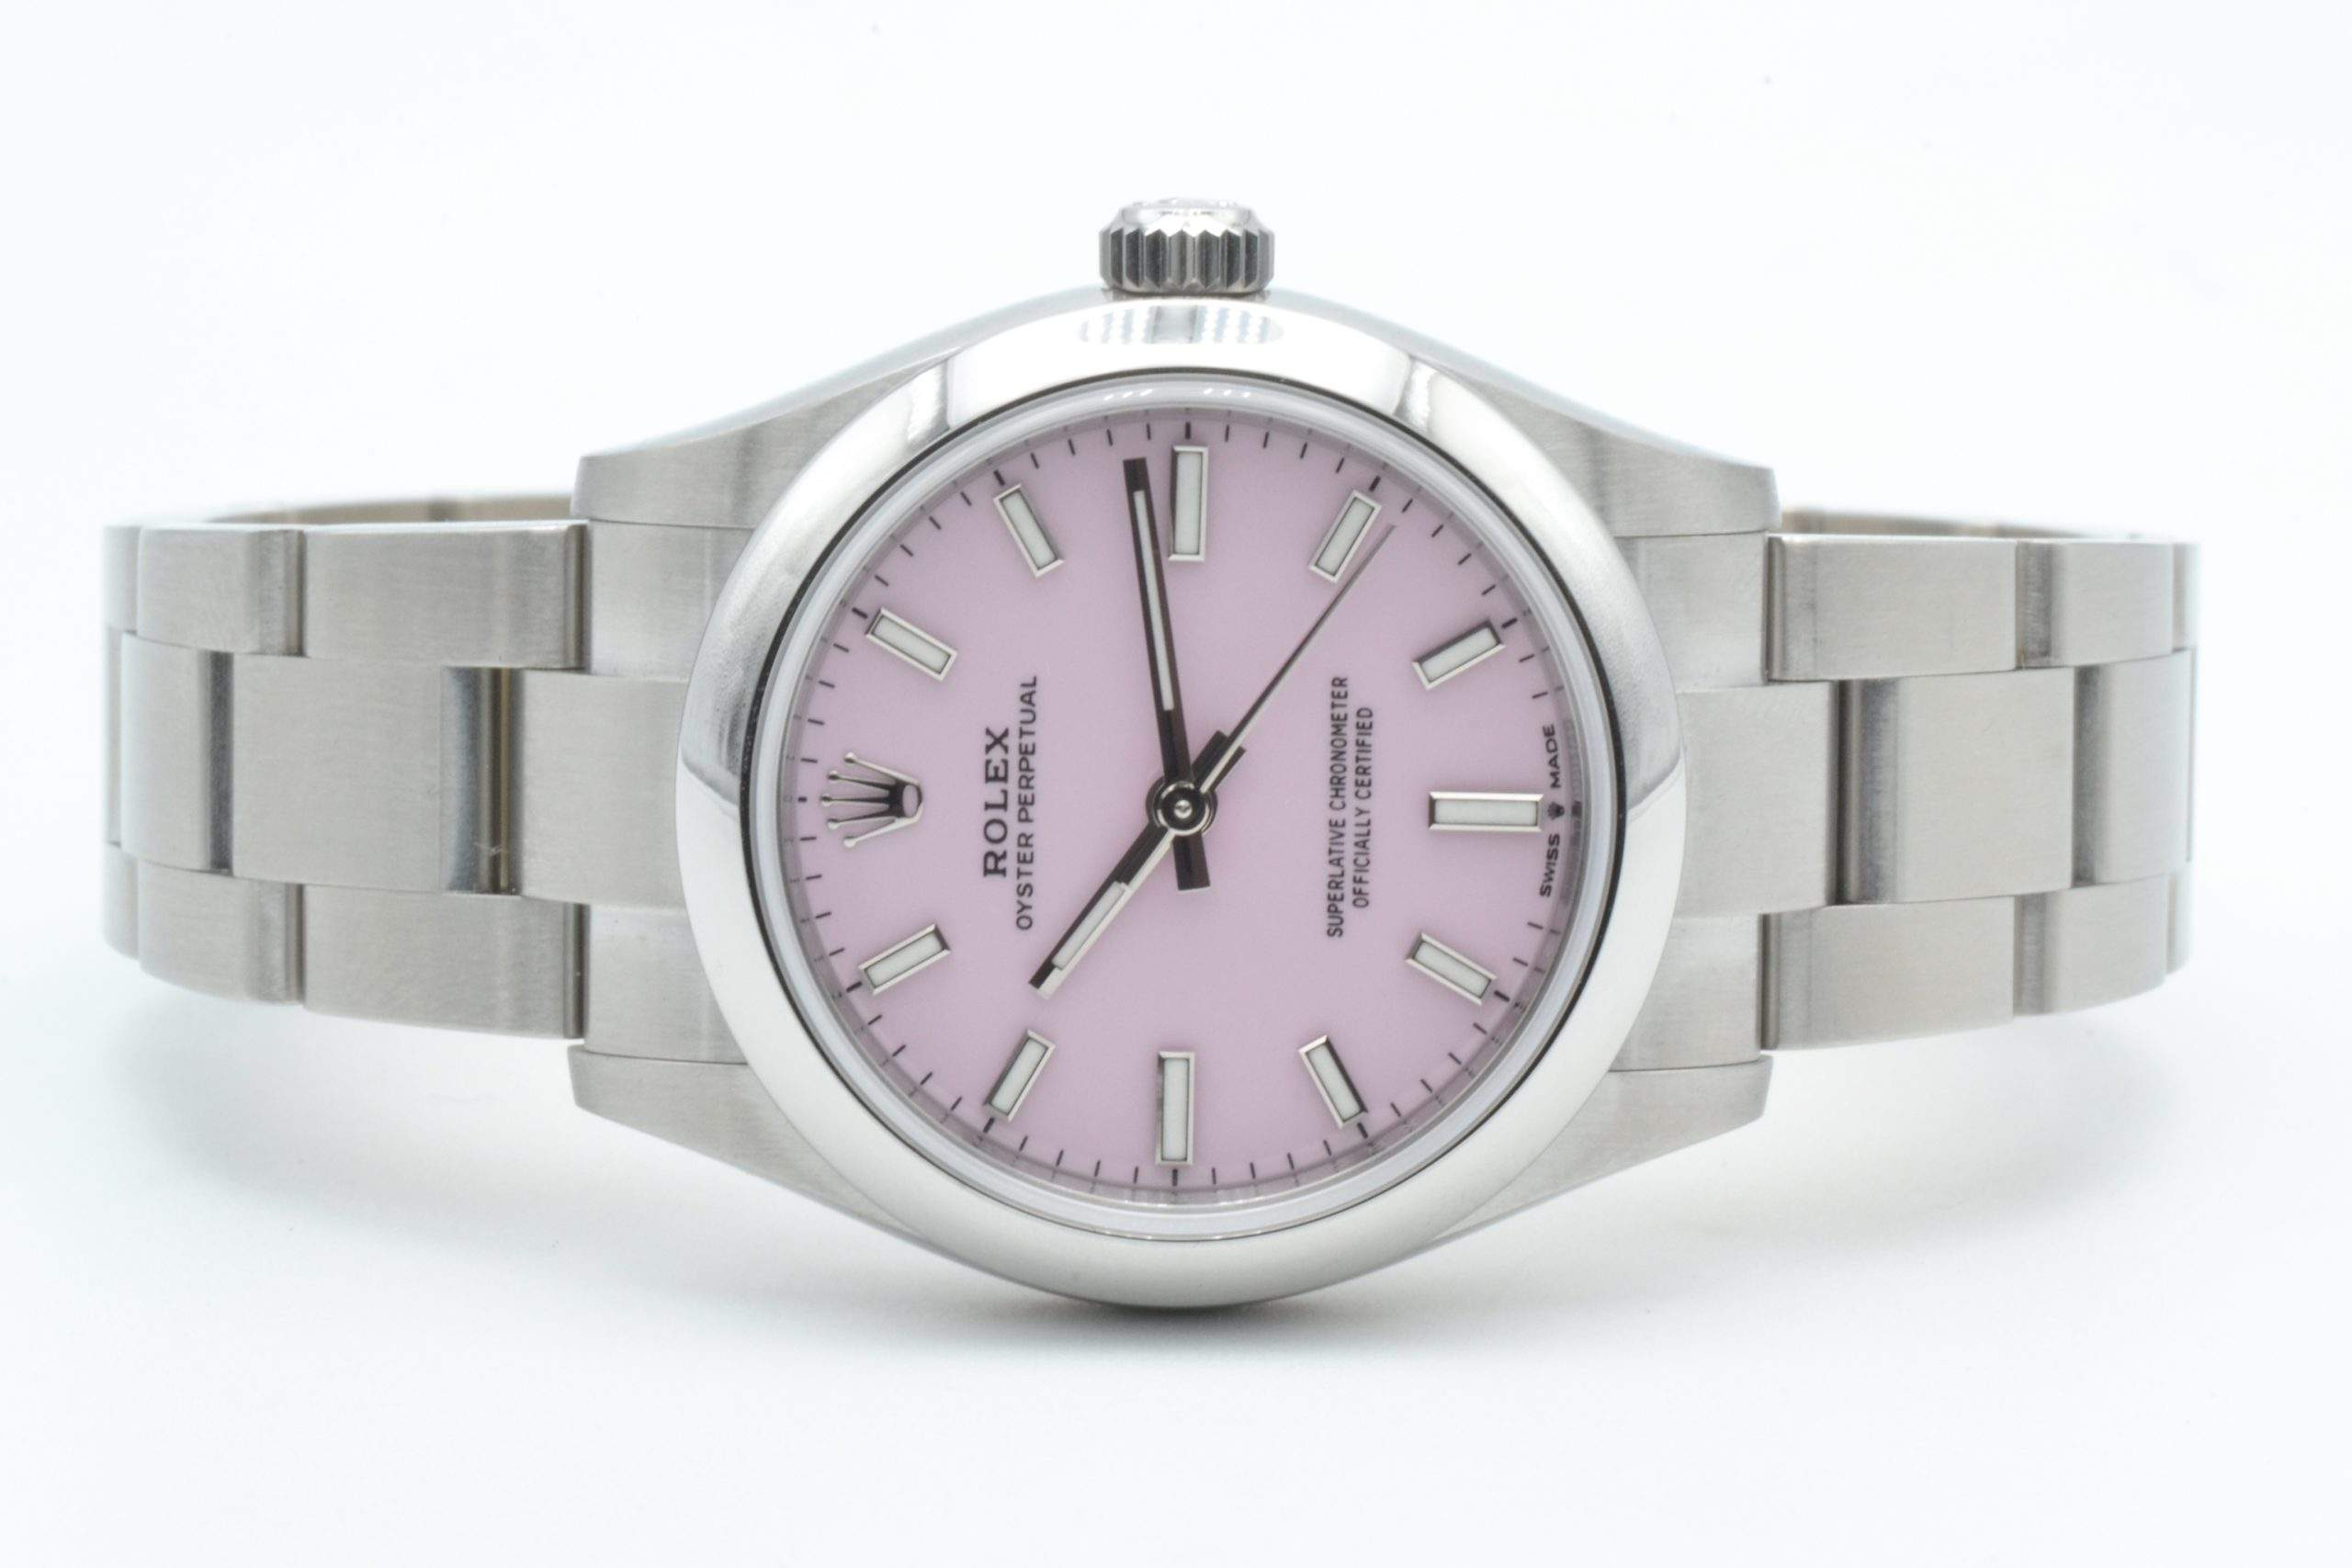 Rolex Oyster Perpetual in candy pink